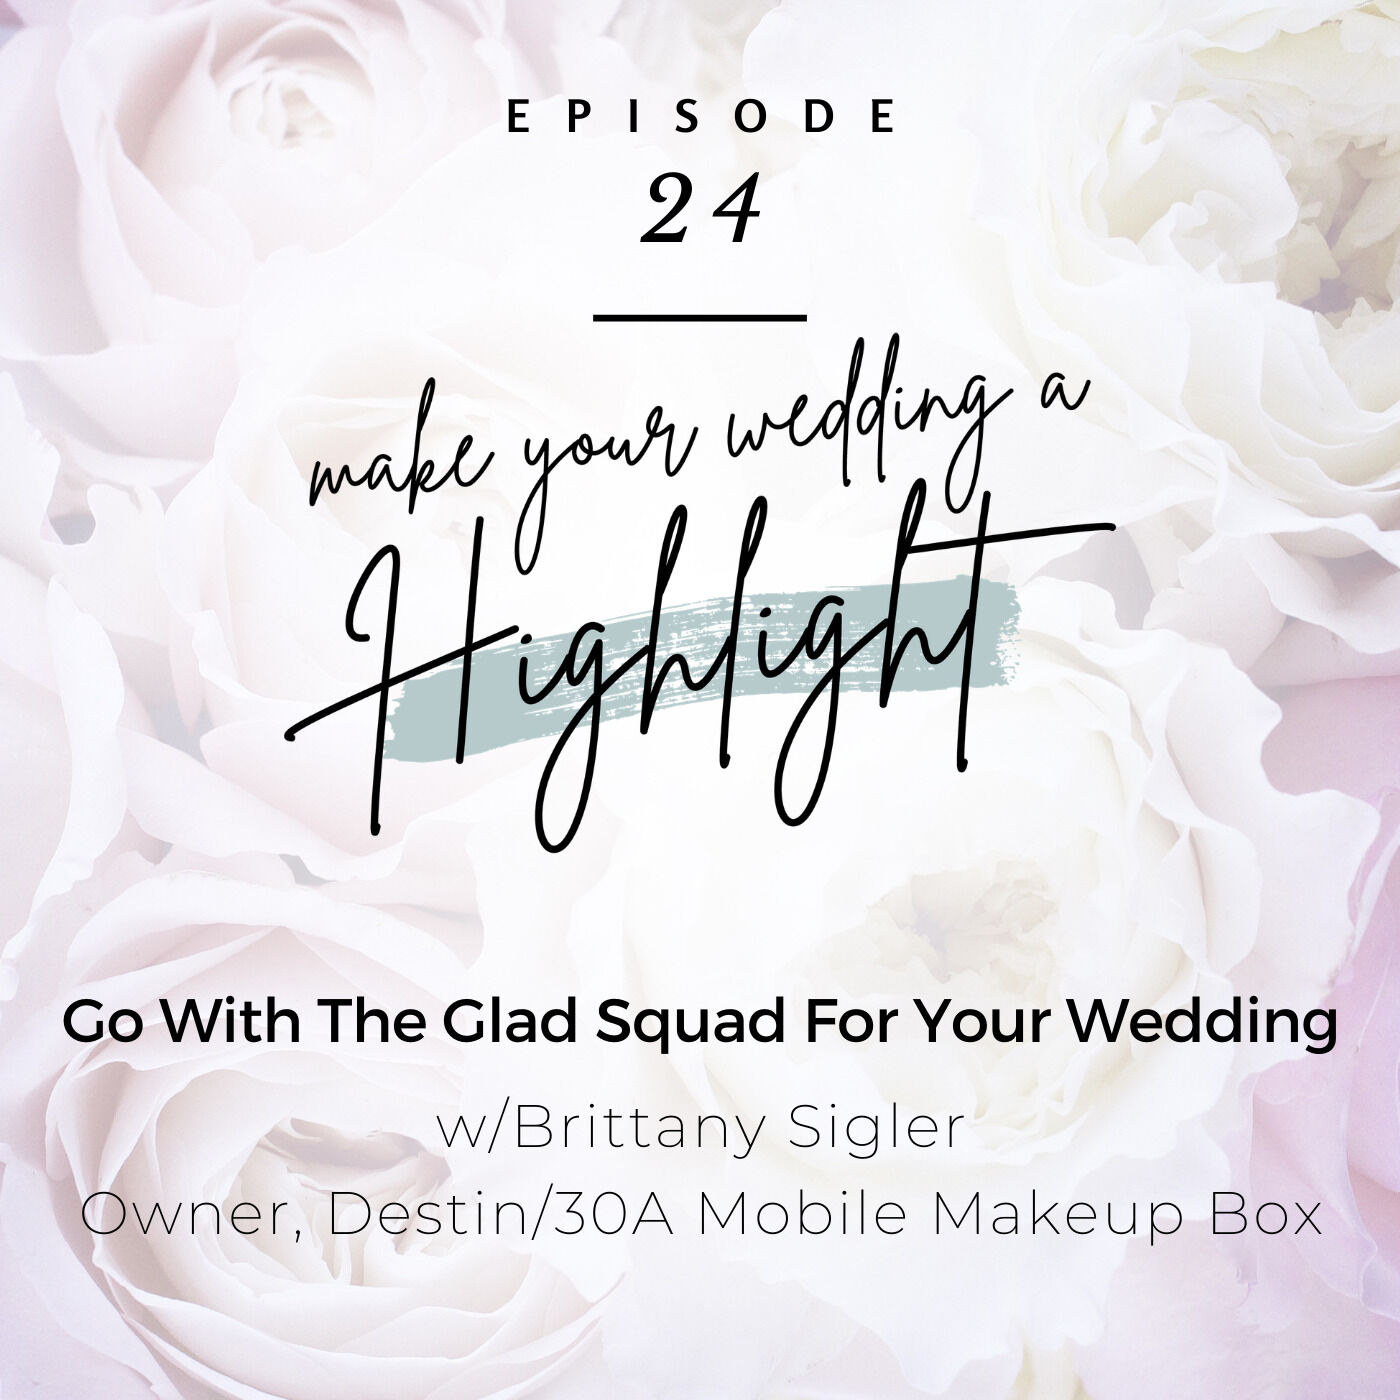 Go With The Glam Squad For Your Wedding